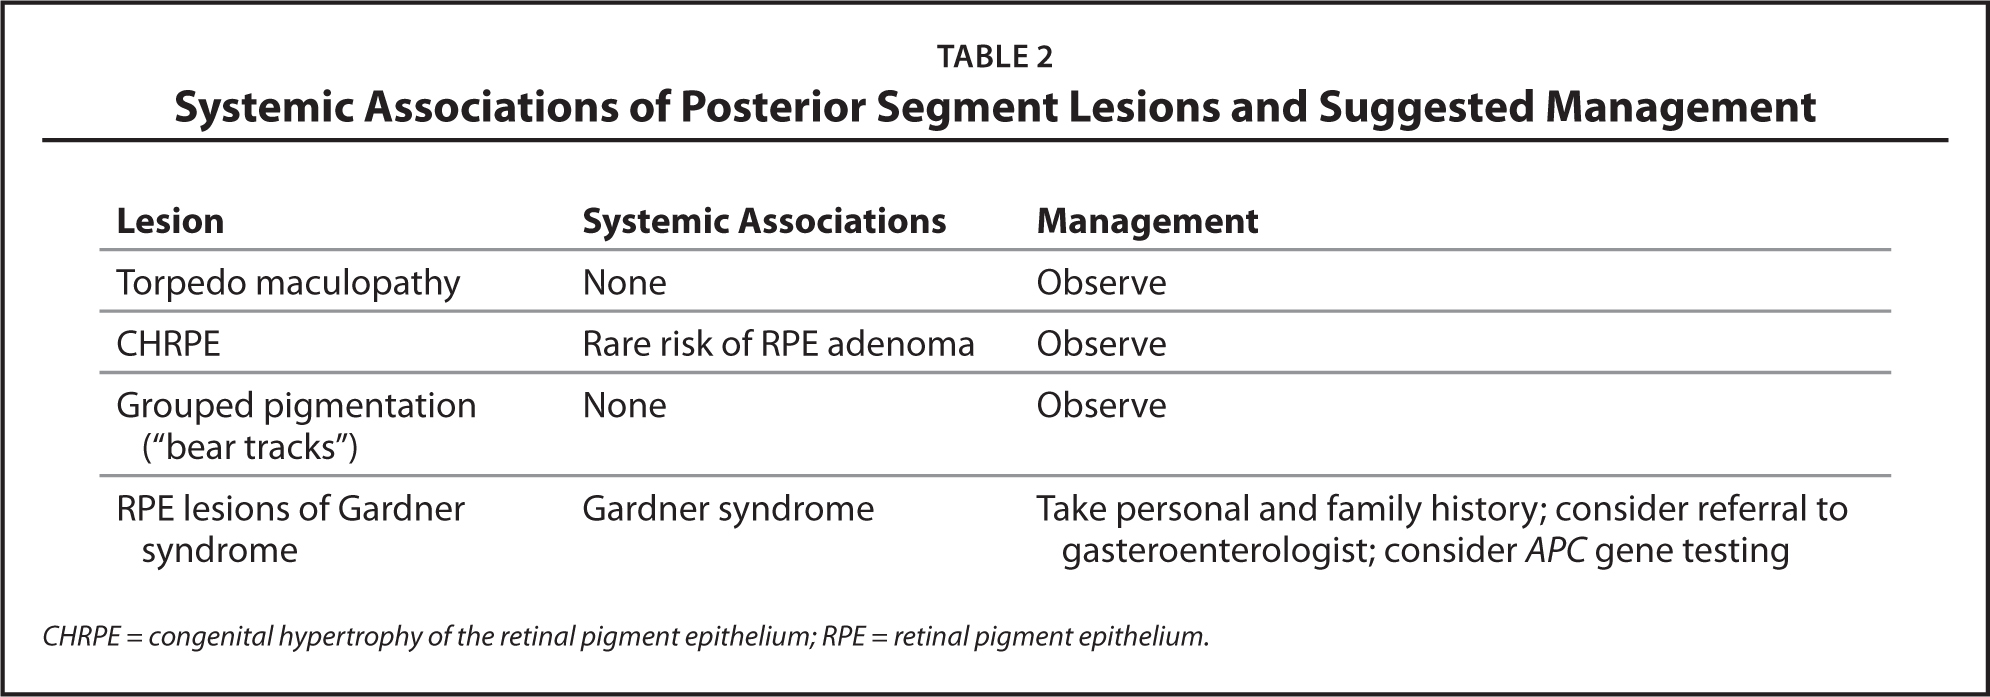 Systemic Associations of Posterior Segment Lesions and Suggested Management